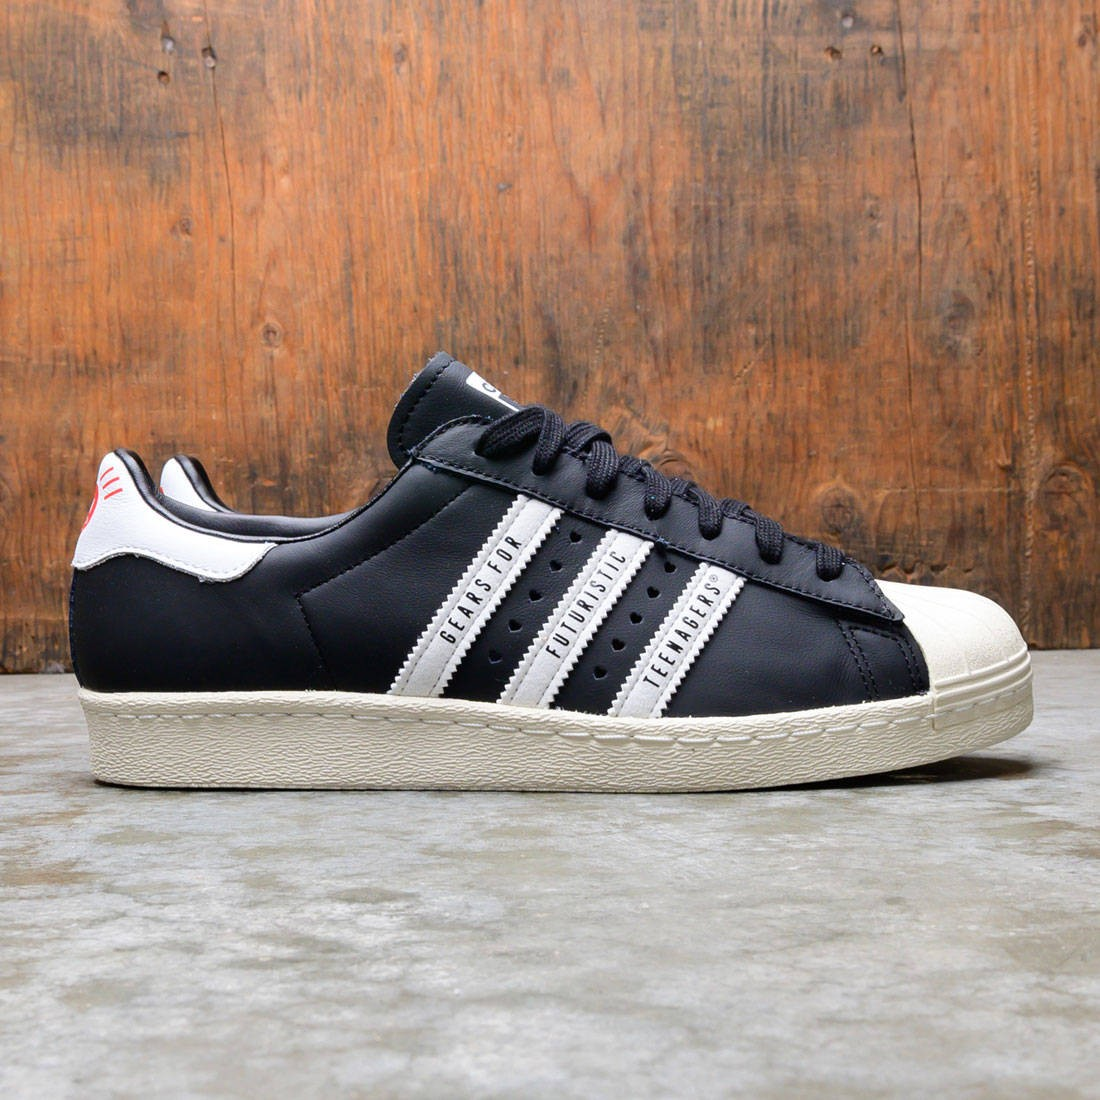 Adidas x Human Made Men Superstar 80s (black / core white / off white)